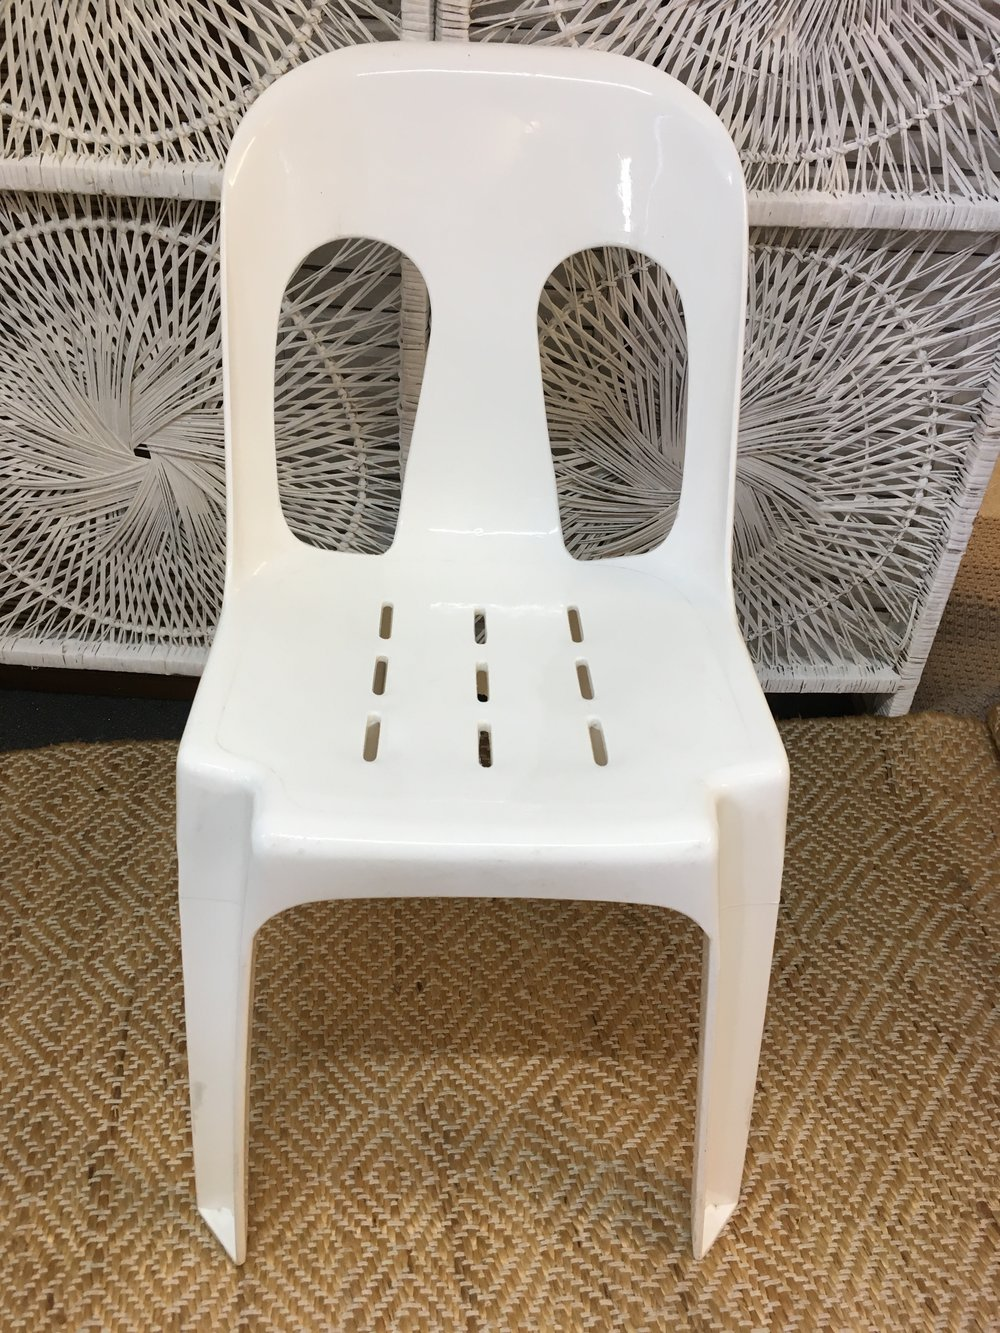 Plastic Chair - $2 each to hire